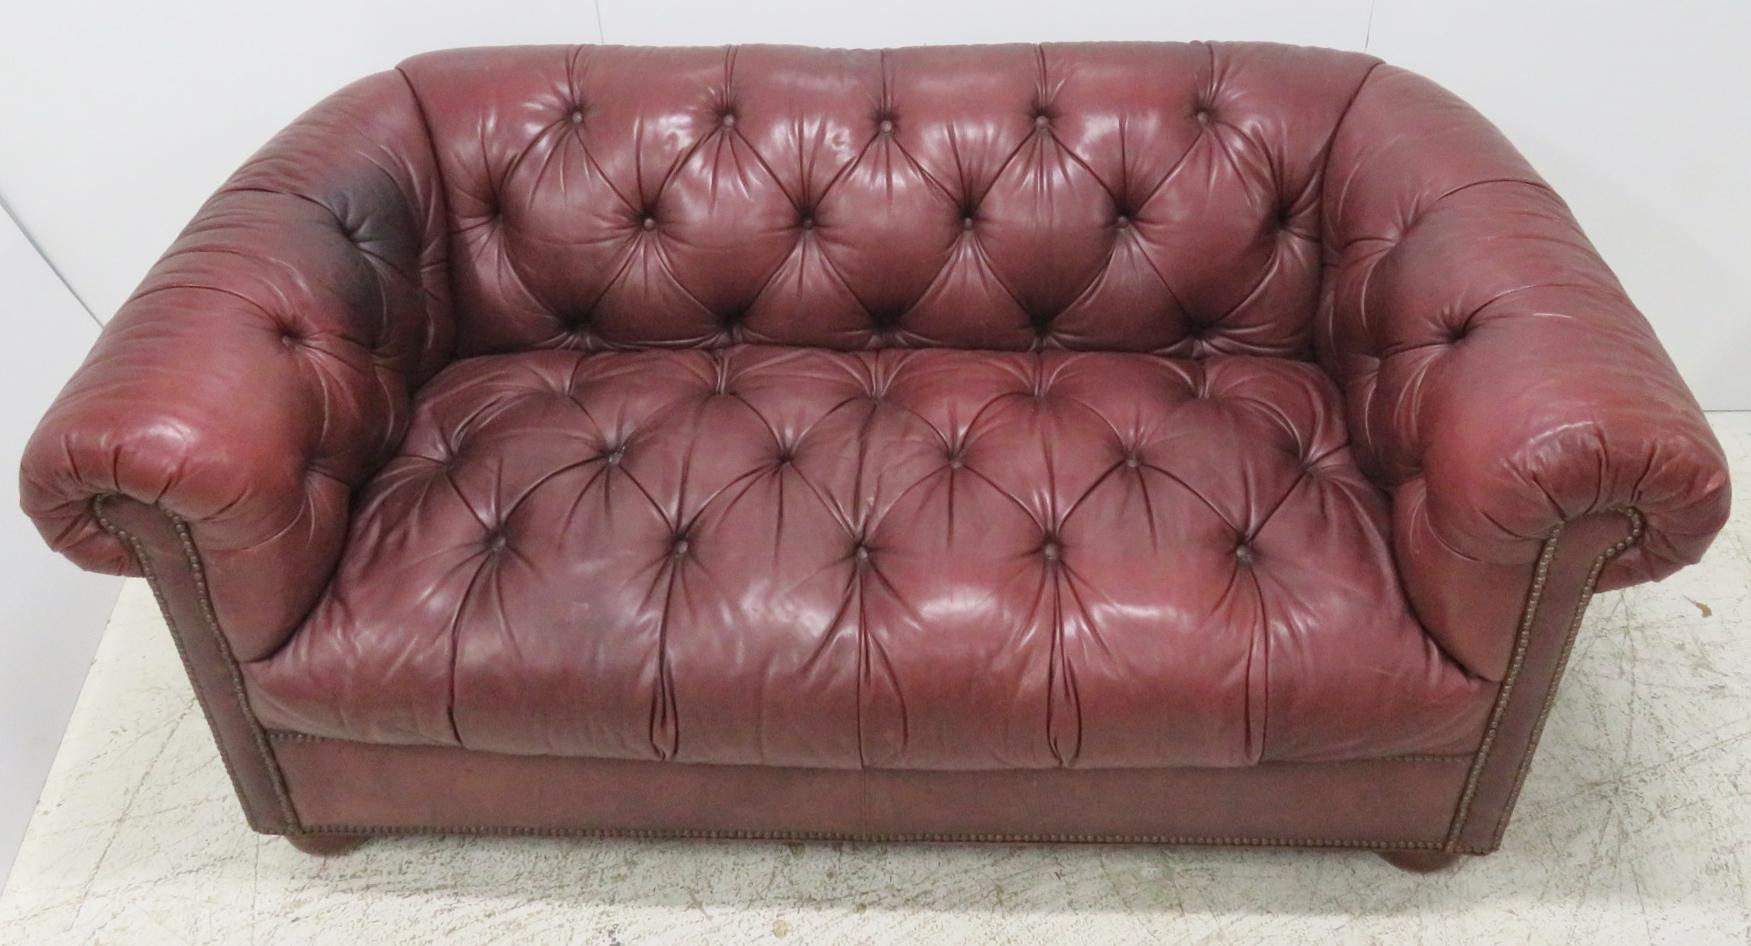 Burgundy Tufted Leather Chesterfield Sofa For Sale In Philadelphia   Image  6 Of 9